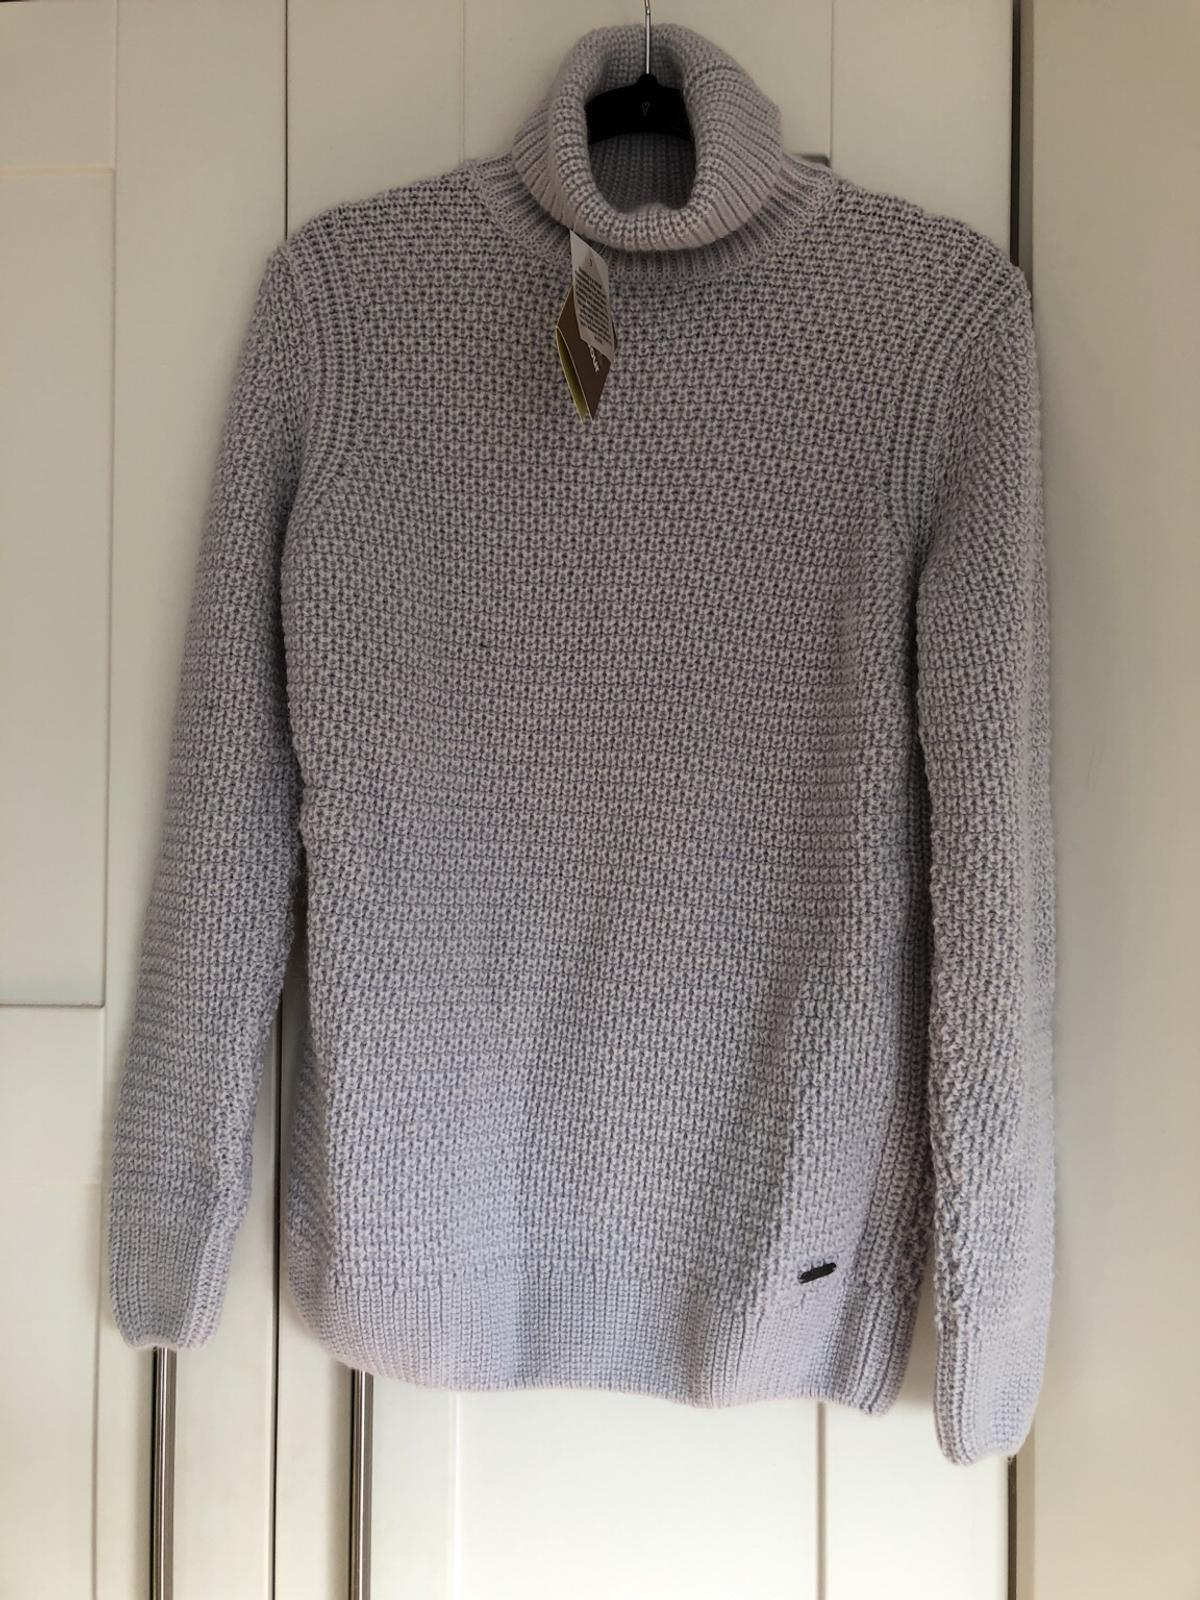 Brand new grey rolled neck knitted Barbour jumper